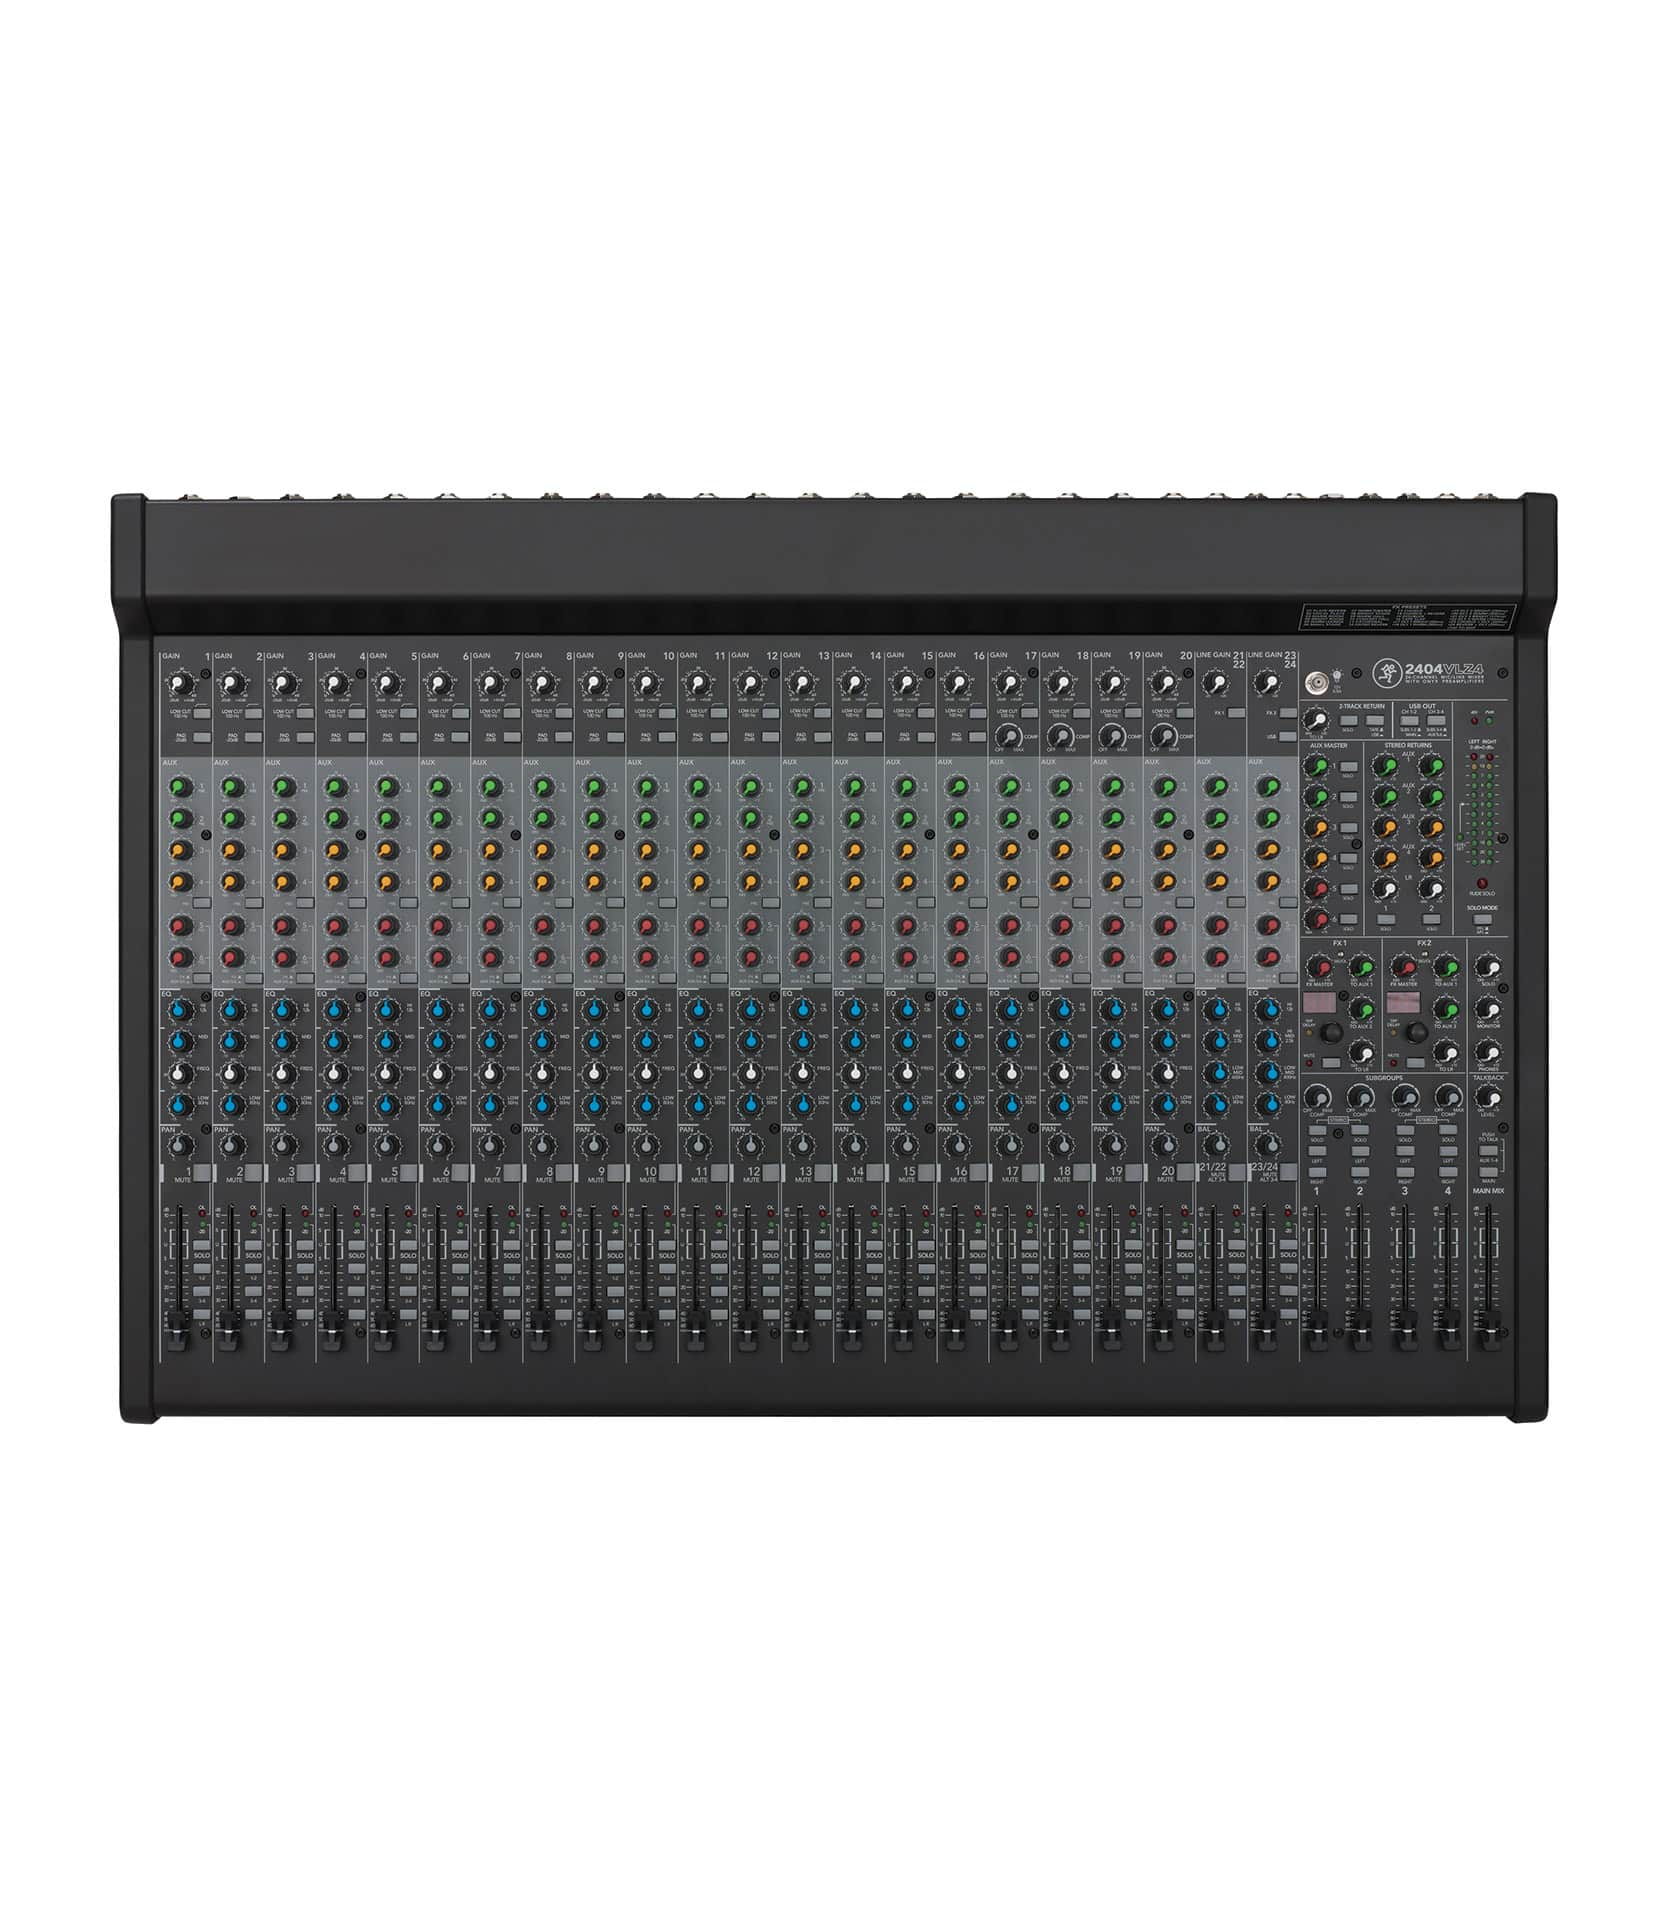 2404VLZ4 24 channel 4 bus FX Mixer with USB